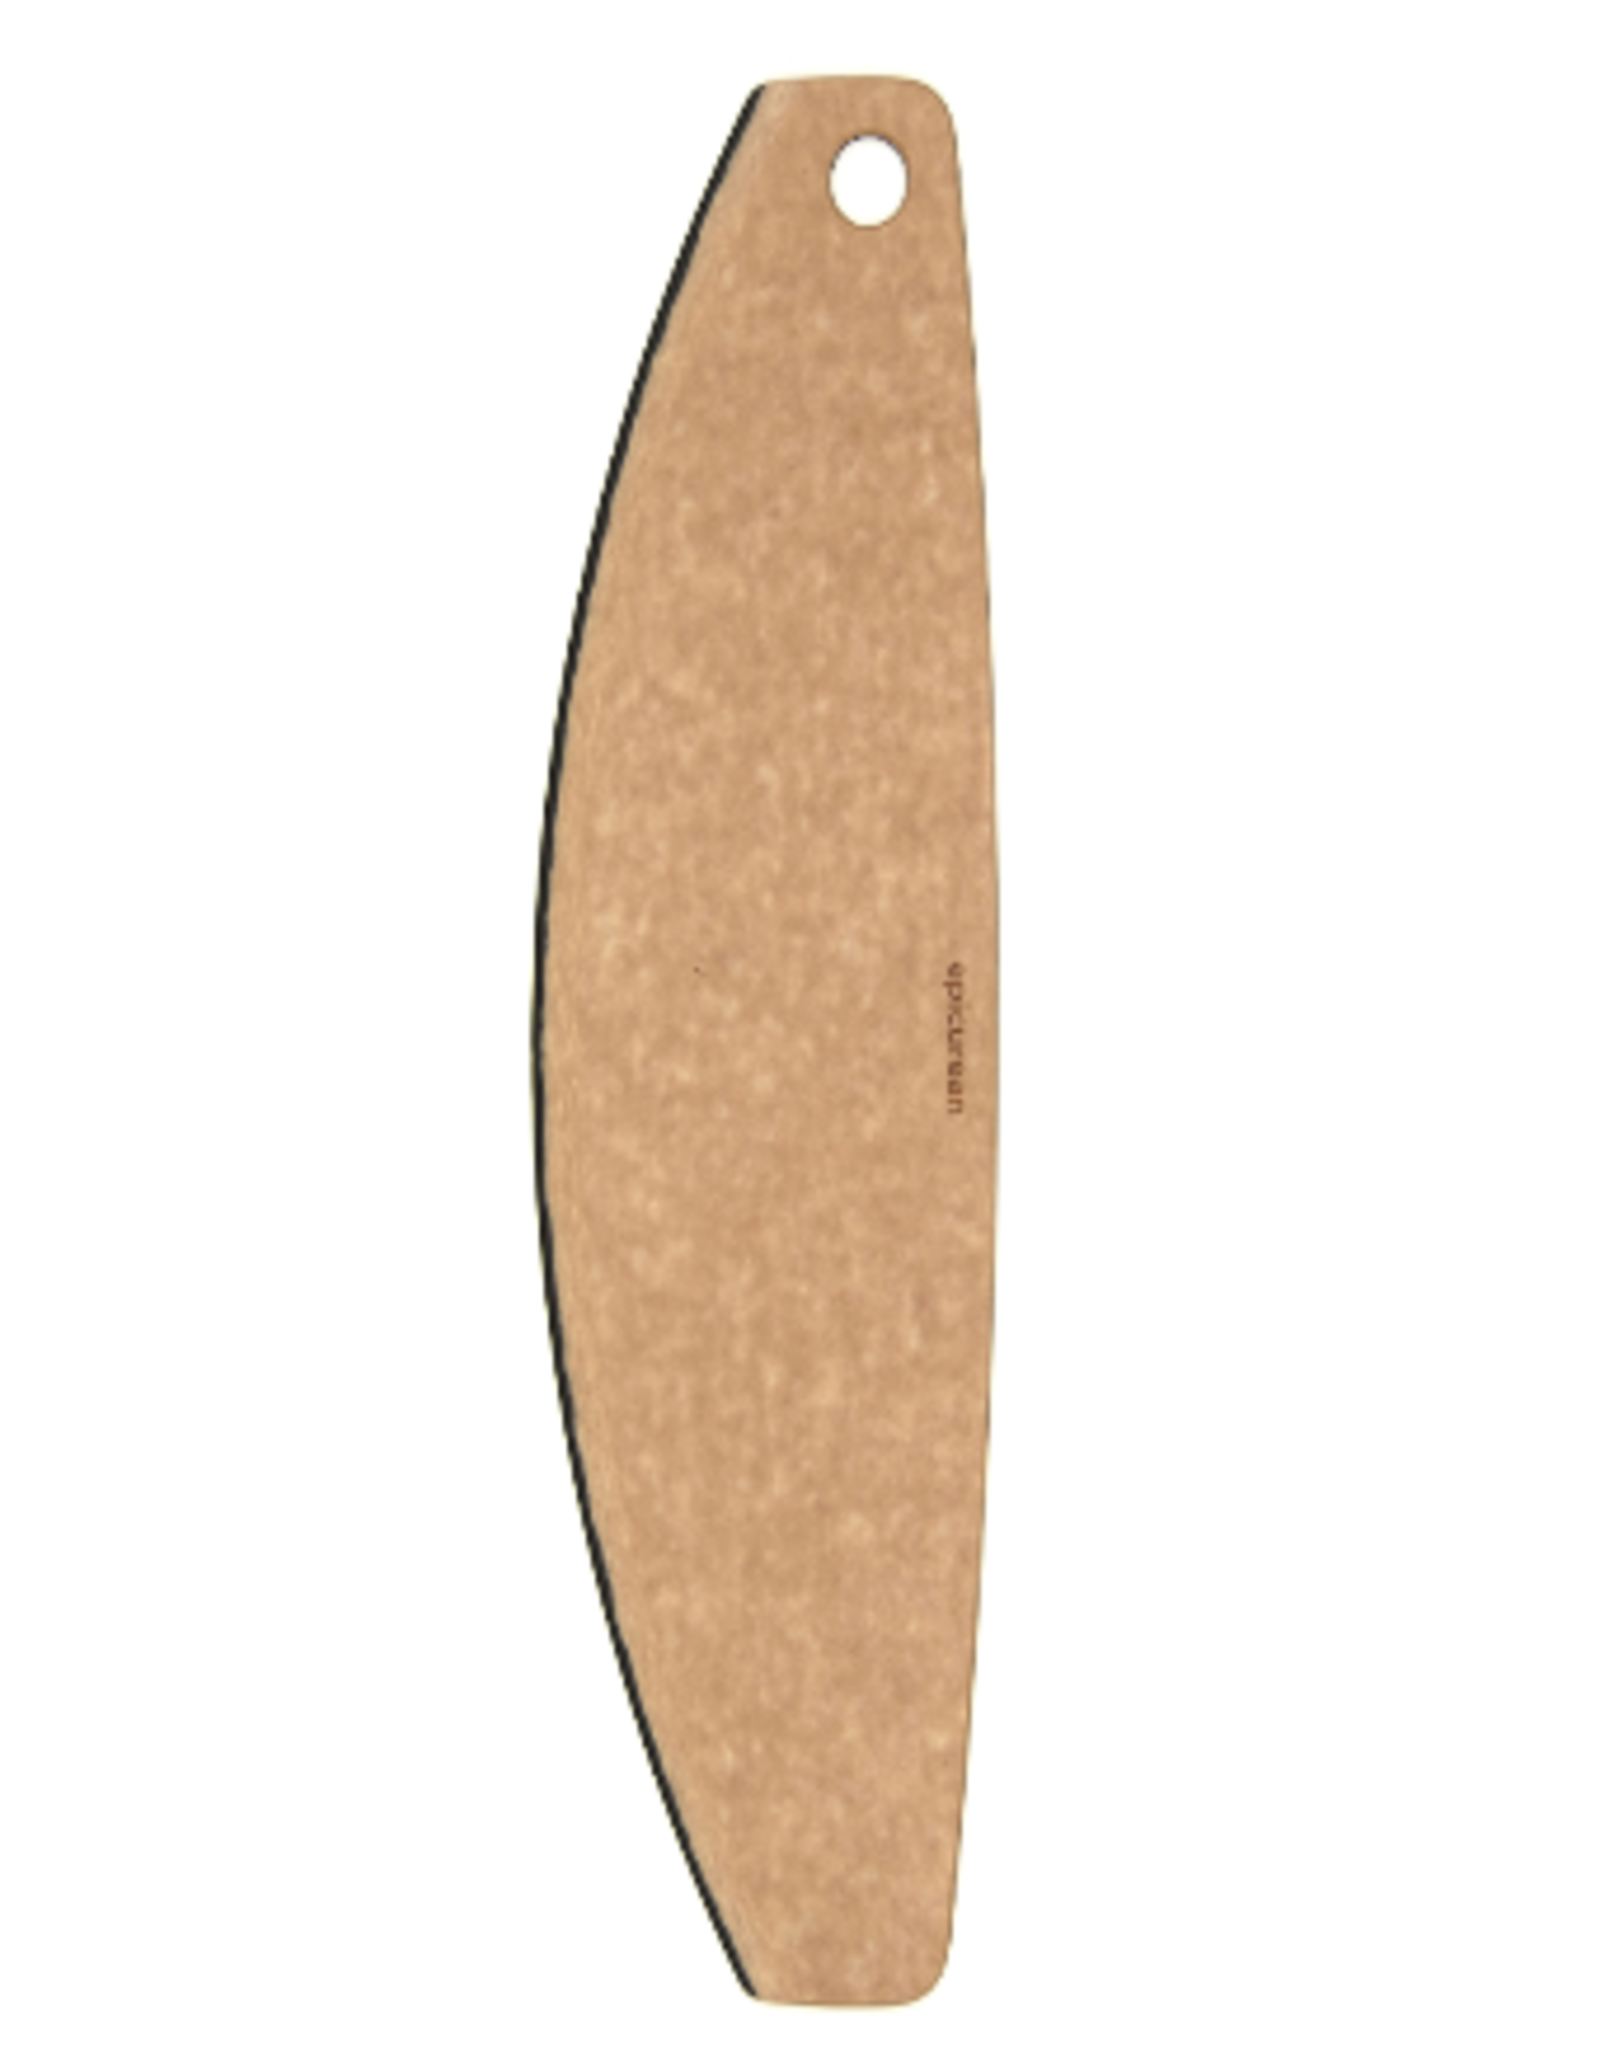 "Epicurean Epicurean Pizza Cutter 16"" - Natural/Slate"